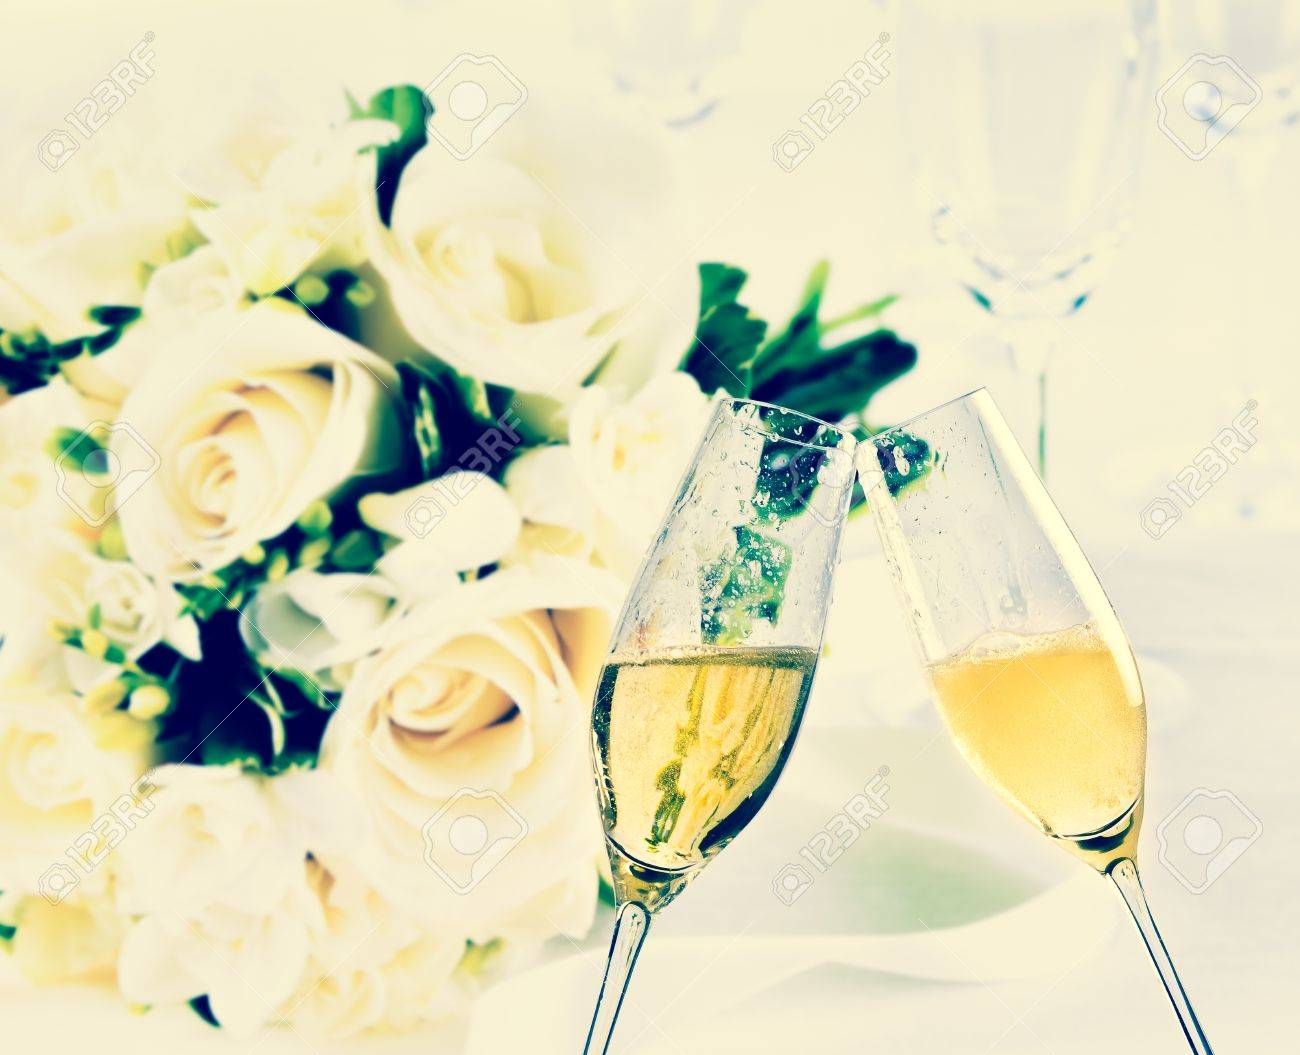 champagne flutes with golden bubbles make cheers on wedding flowers